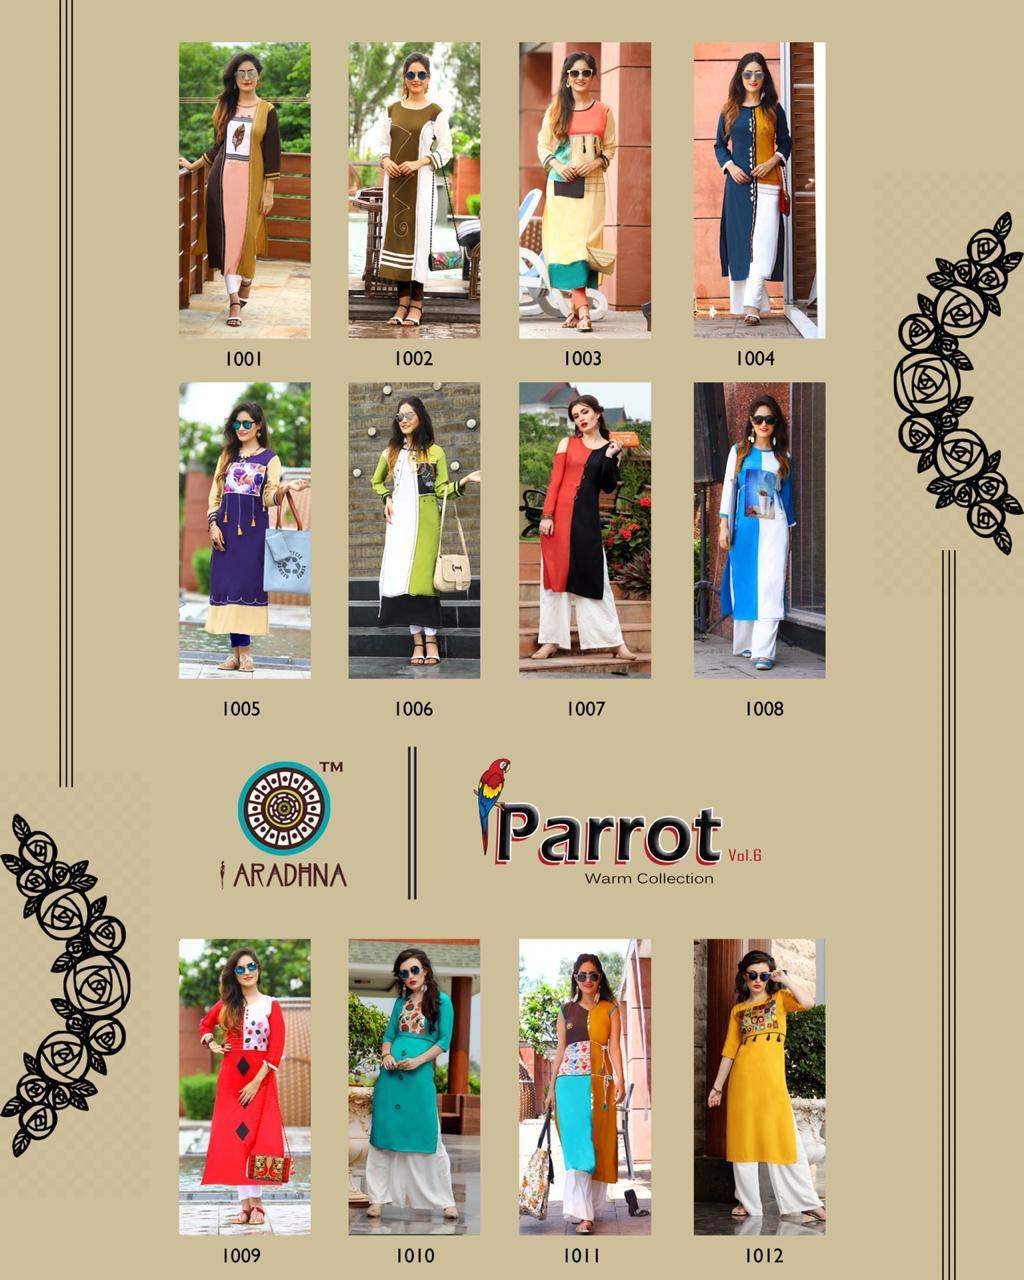 Aradhna Parrot 6 collection 2